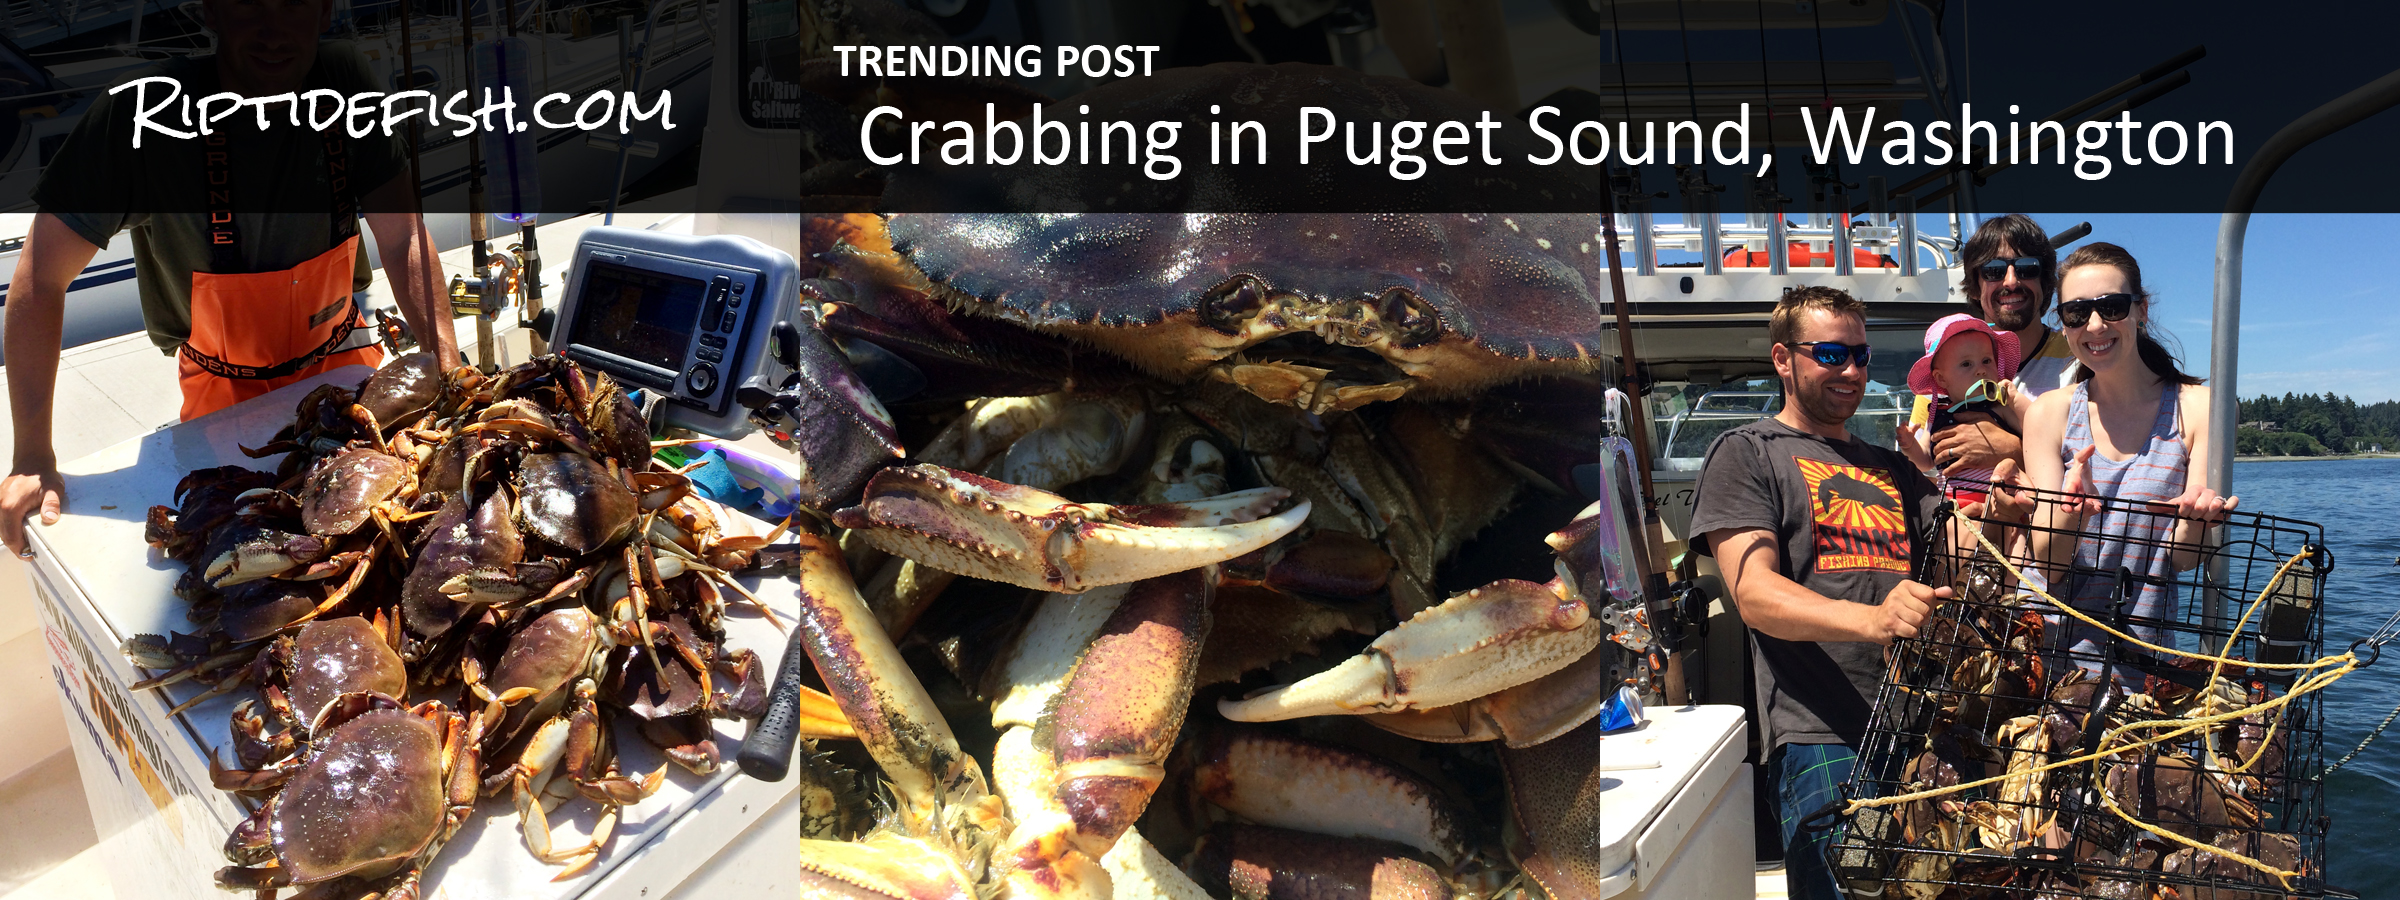 Crabbing in Puget Sound Washington